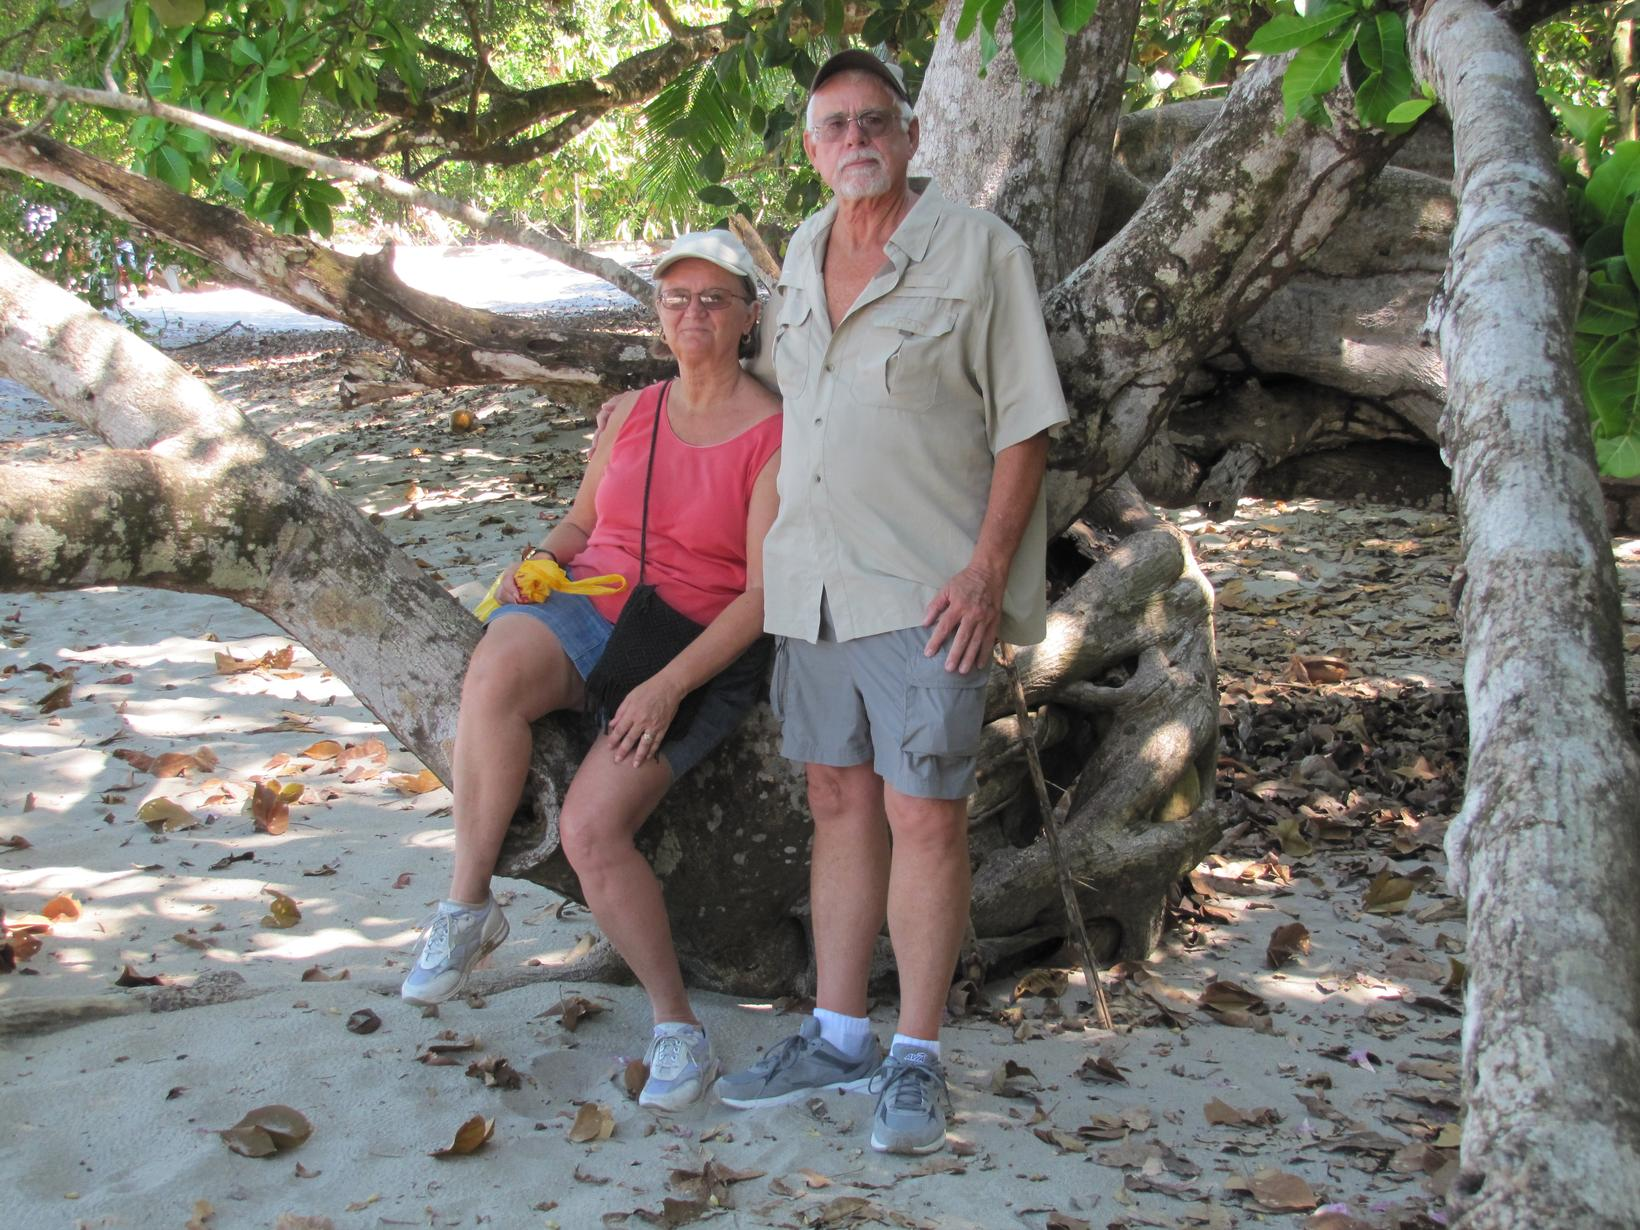 Terry & Vicki from Andover, Ohio, United States